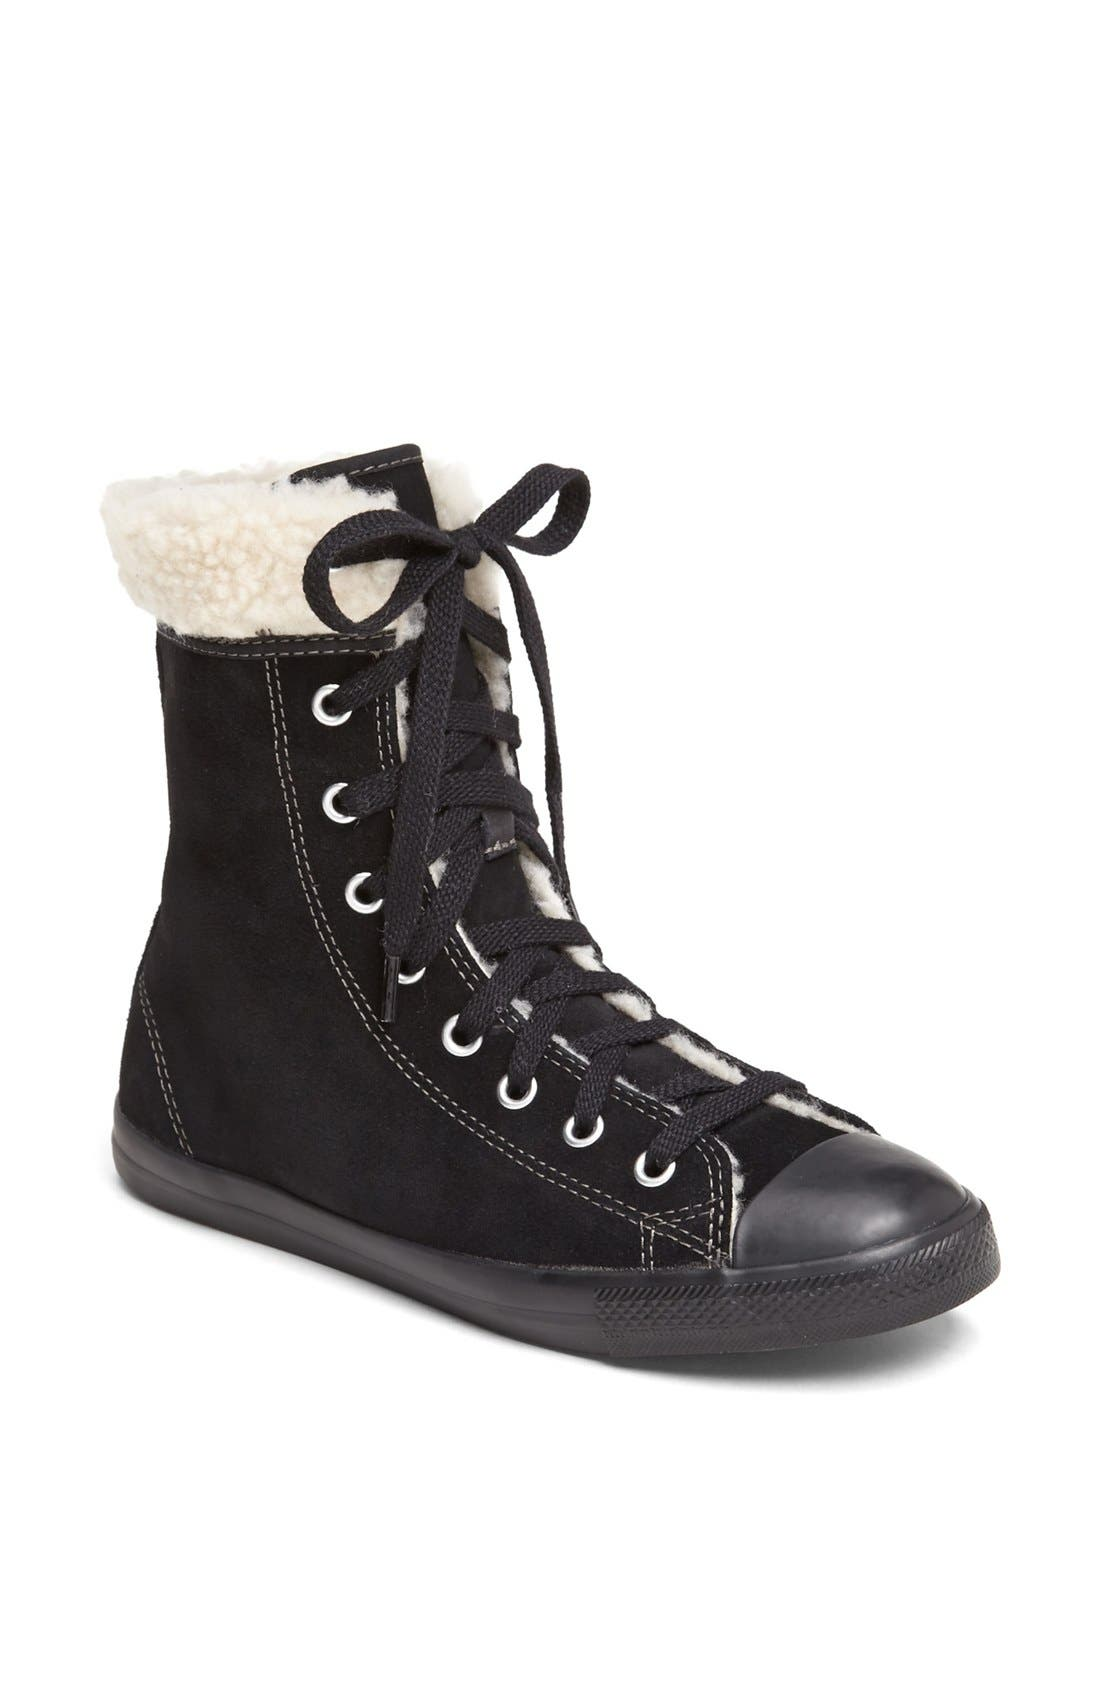 Main Image - Converse Chuck Taylor® All Star®' Dainty' Suede High Top Sneaker (Women)